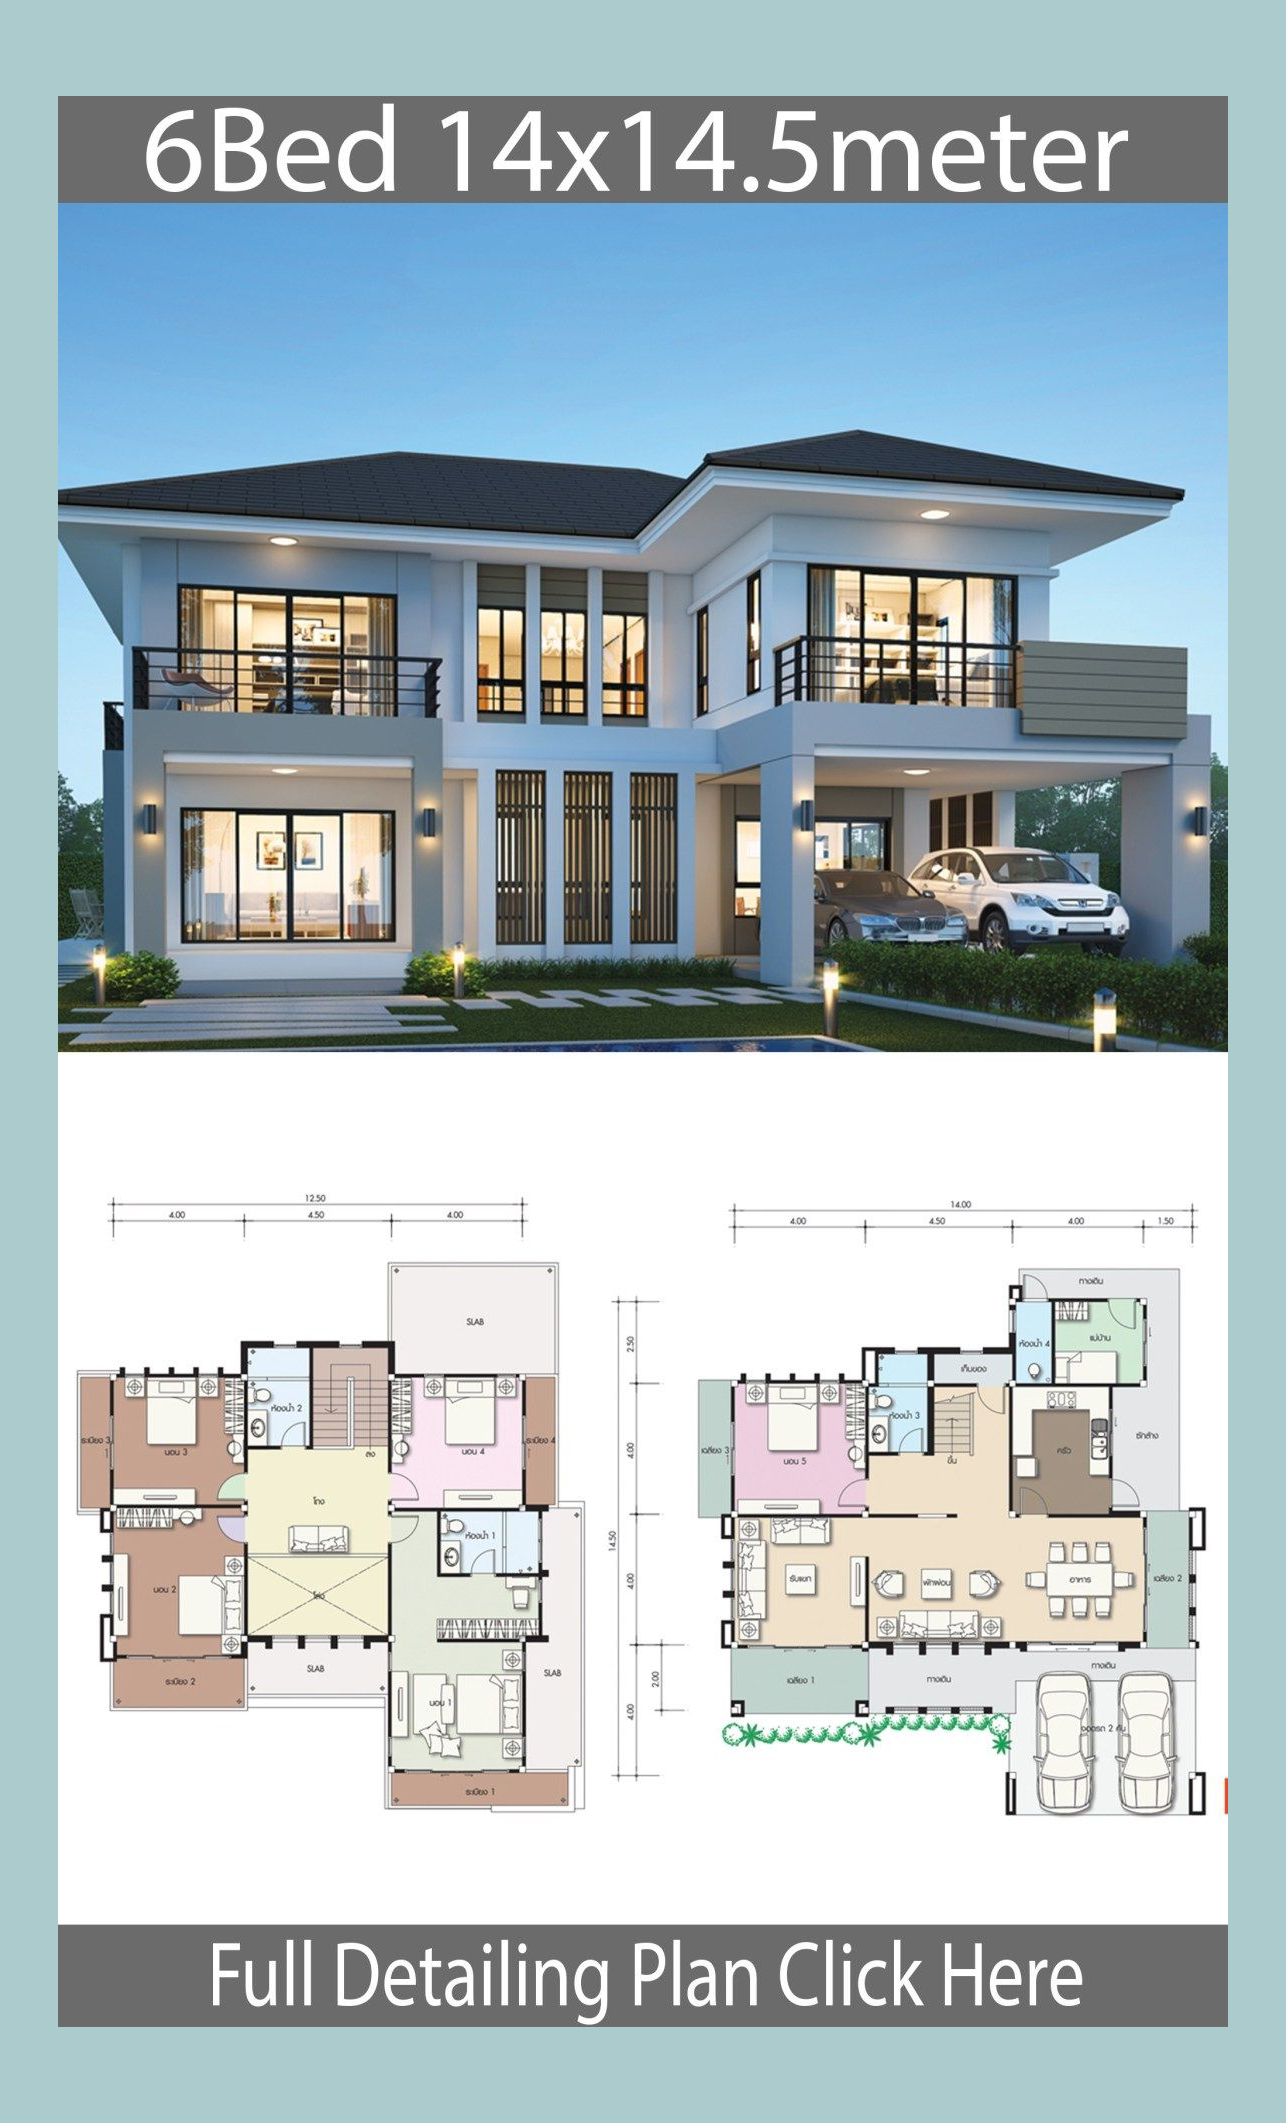 How To Stage A Bedroom To Sell Your Home 736321 Smart Home Smarthome Savvy Homeowner Tips On Beautiful House Plans House Layout Plans Duplex House Design